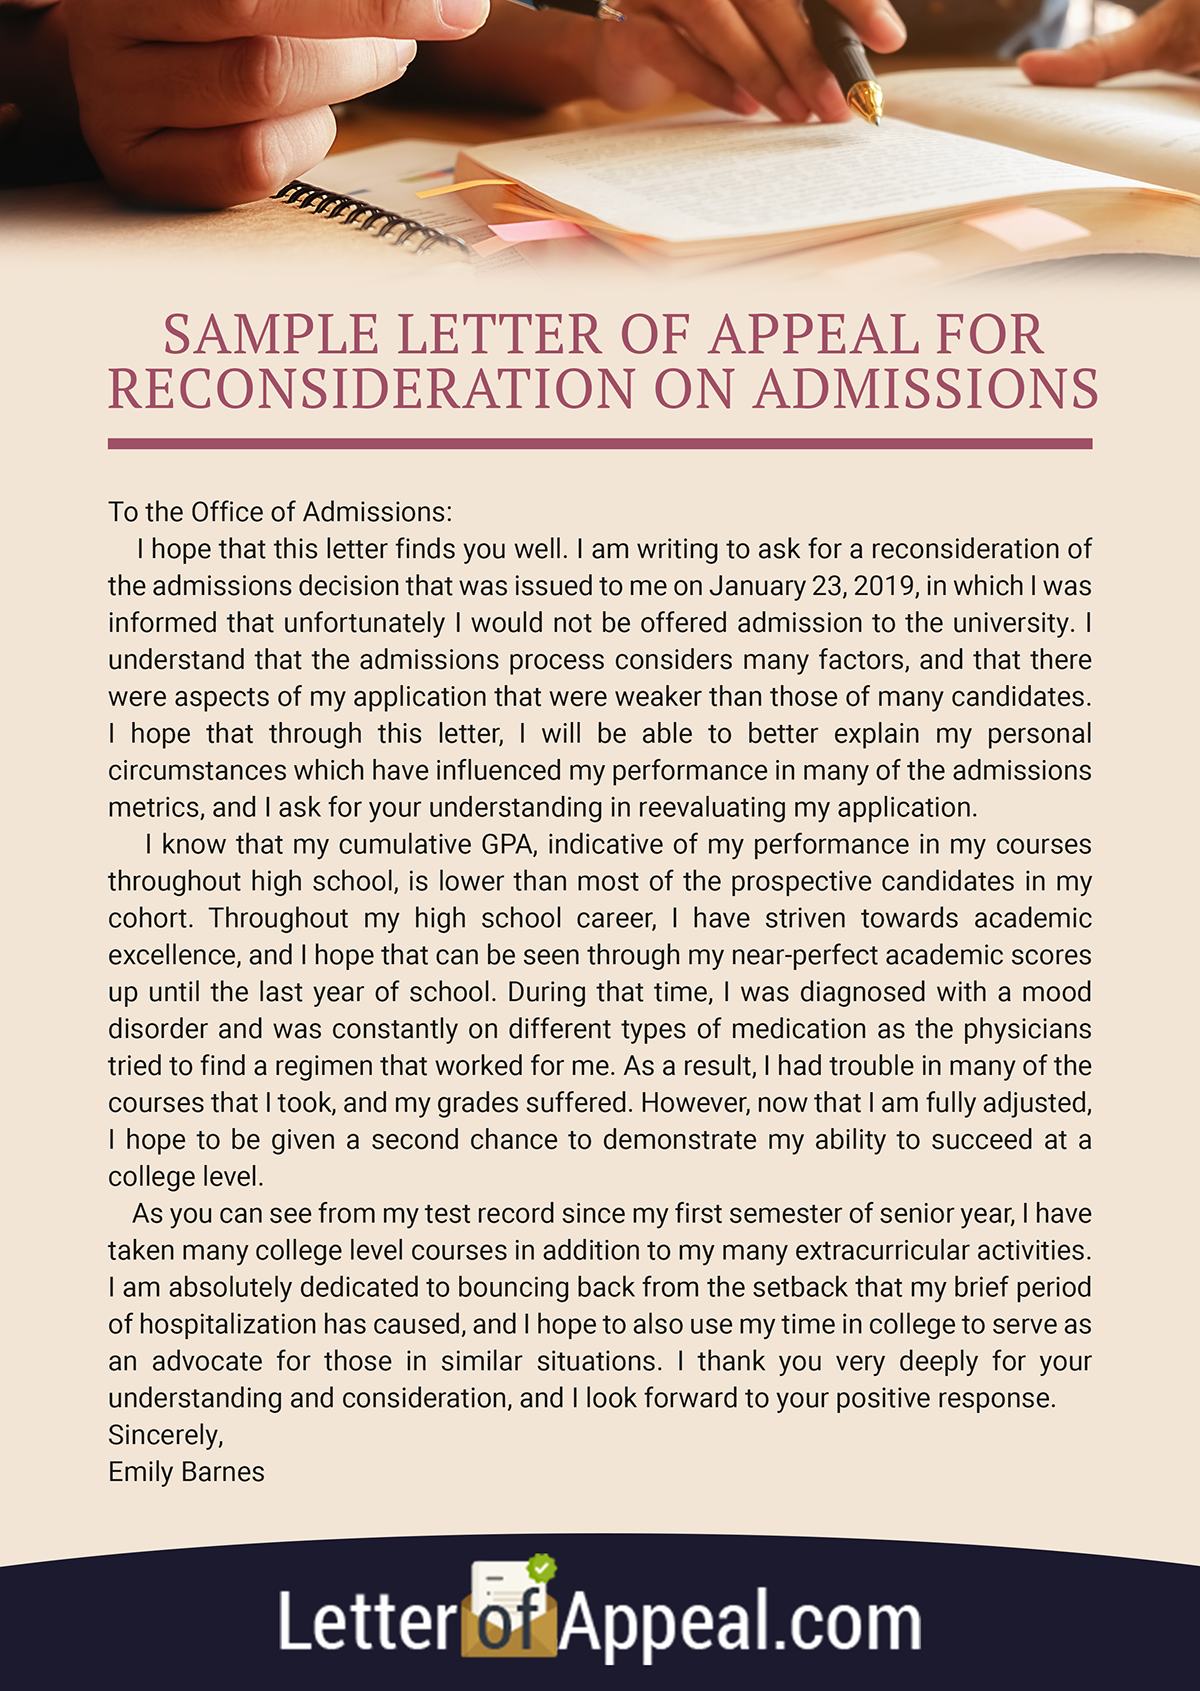 Sample Letter Of Appeal For Reconsideration from mir-s3-cdn-cf.behance.net